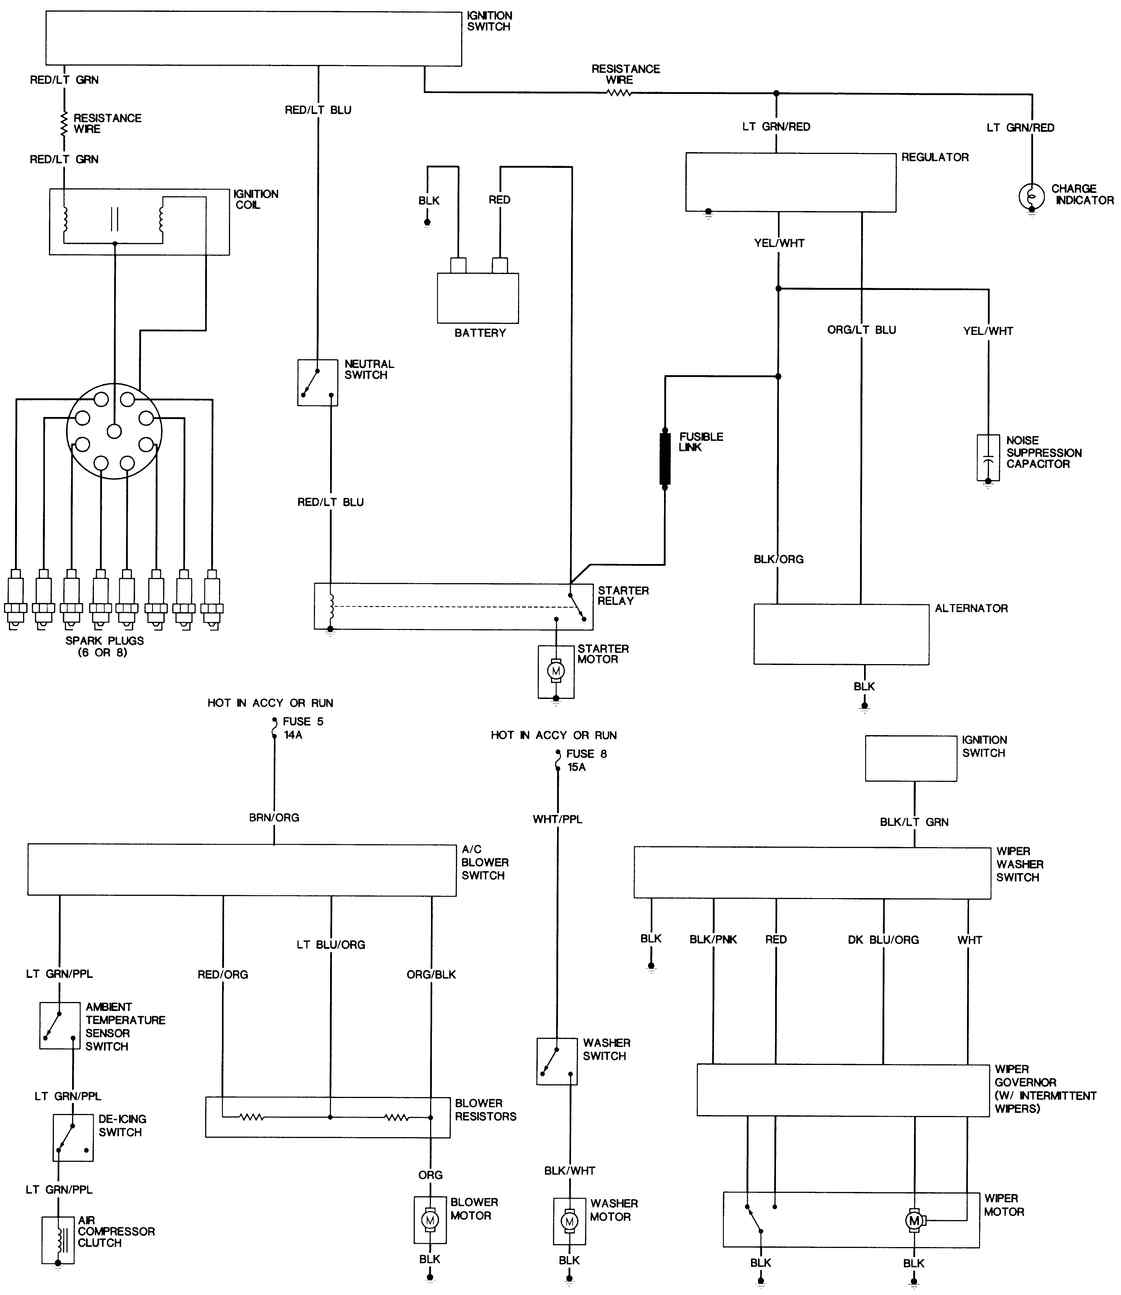 Ford Ignition System Wiring Diagram Guide And Troubleshooting Of Electronic 73 Corvette 1979 302 Single Point Distributor Does Anyone Have An Engine Rh Justanswer Com Control Module Switch